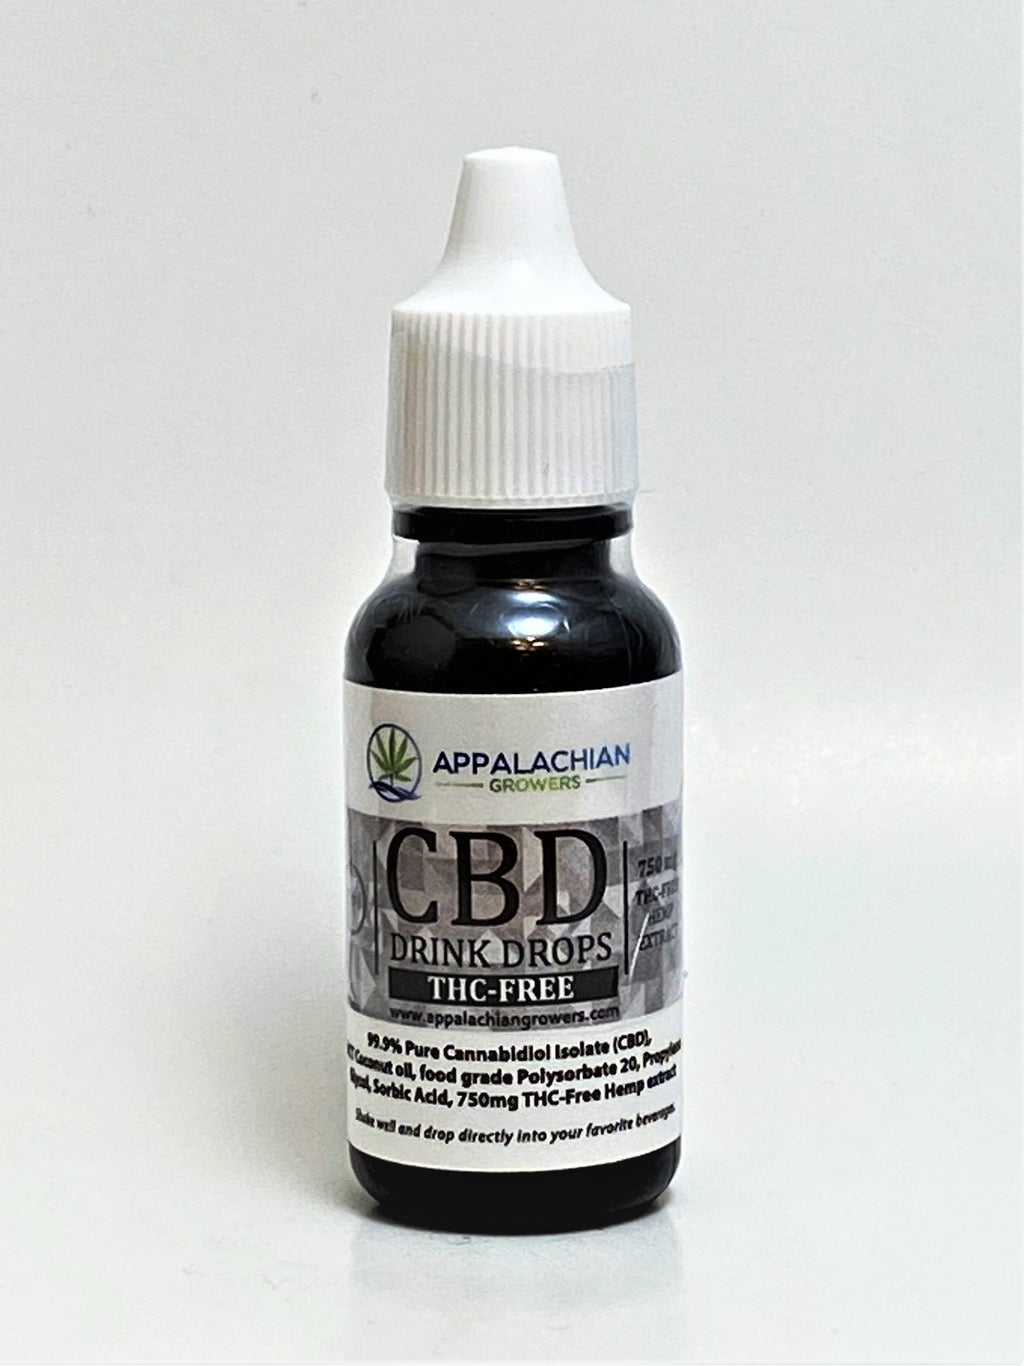 Appalachian Growers Water Soluble Drink Drops 750 mg Isolate CBD